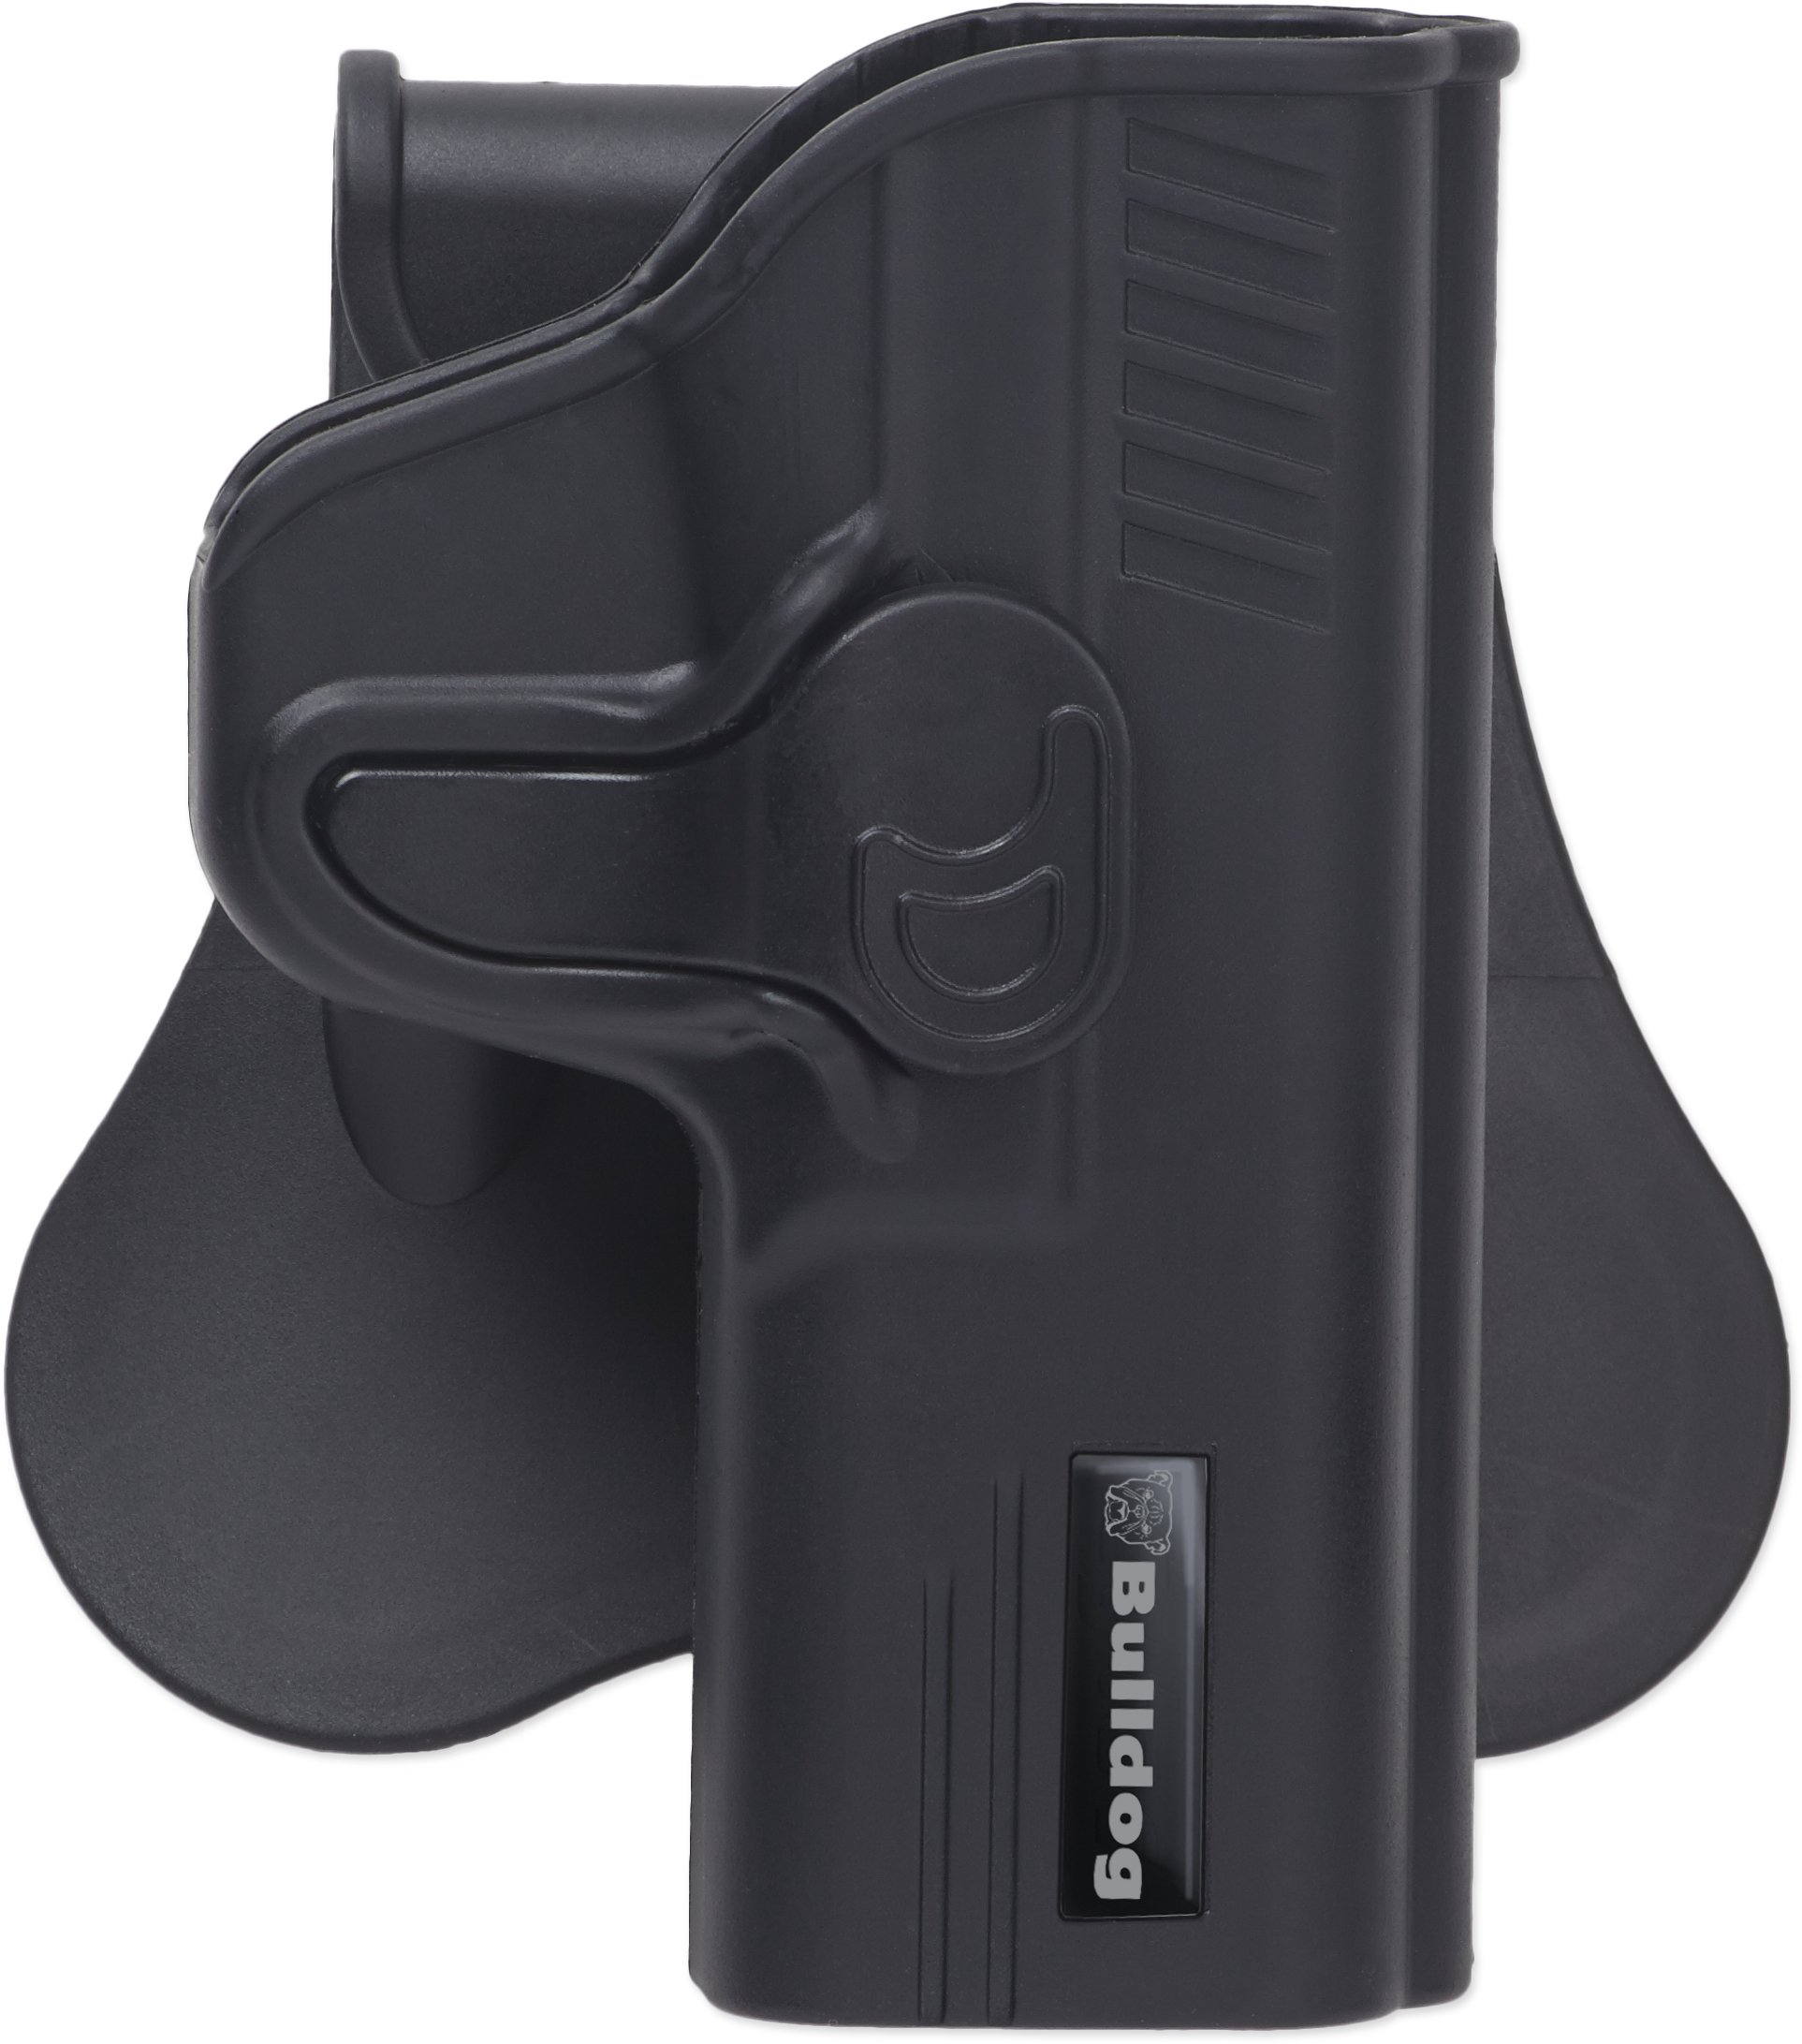 Bulldog Cases Rapid Release Polymer Holster (Fits Sig Sauer P220, P225, P226, P228, P229), Black by Bulldog Cases